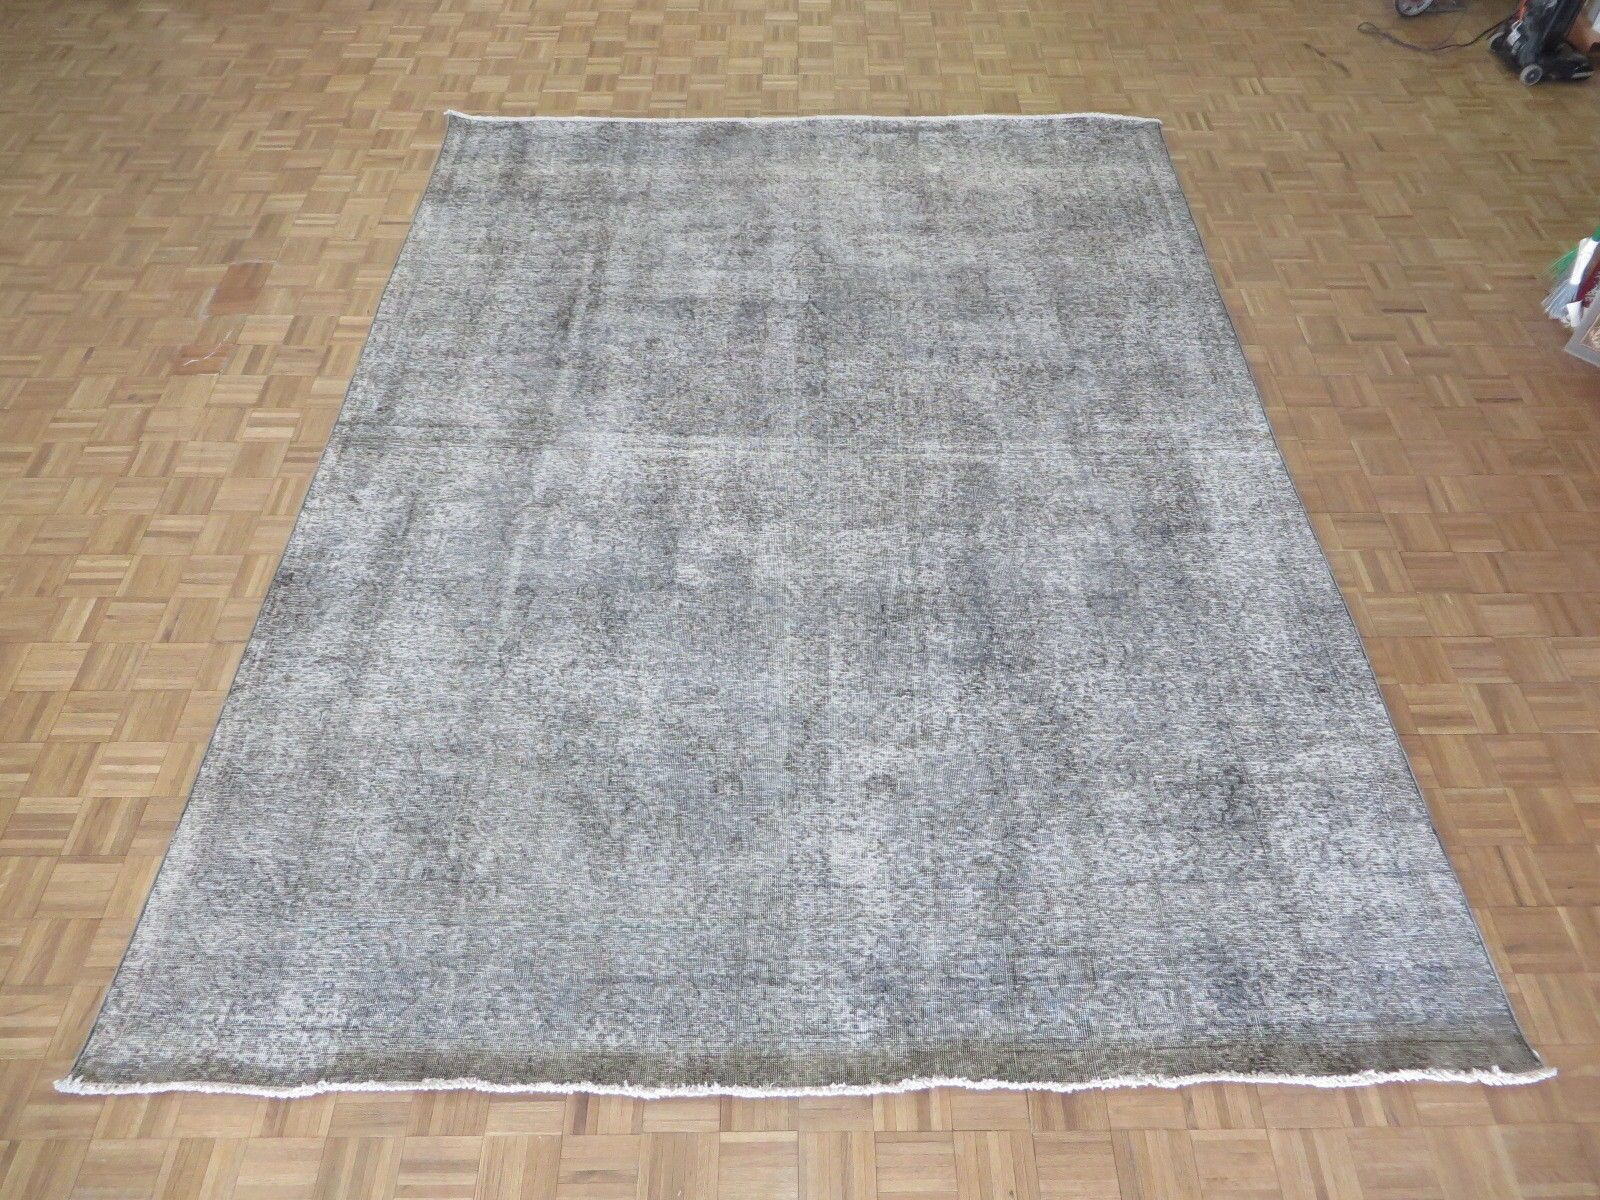 One-of-a-Kind Edinburgh Over-dyed Persian Hand-Knotted Wool Gray Area Rug